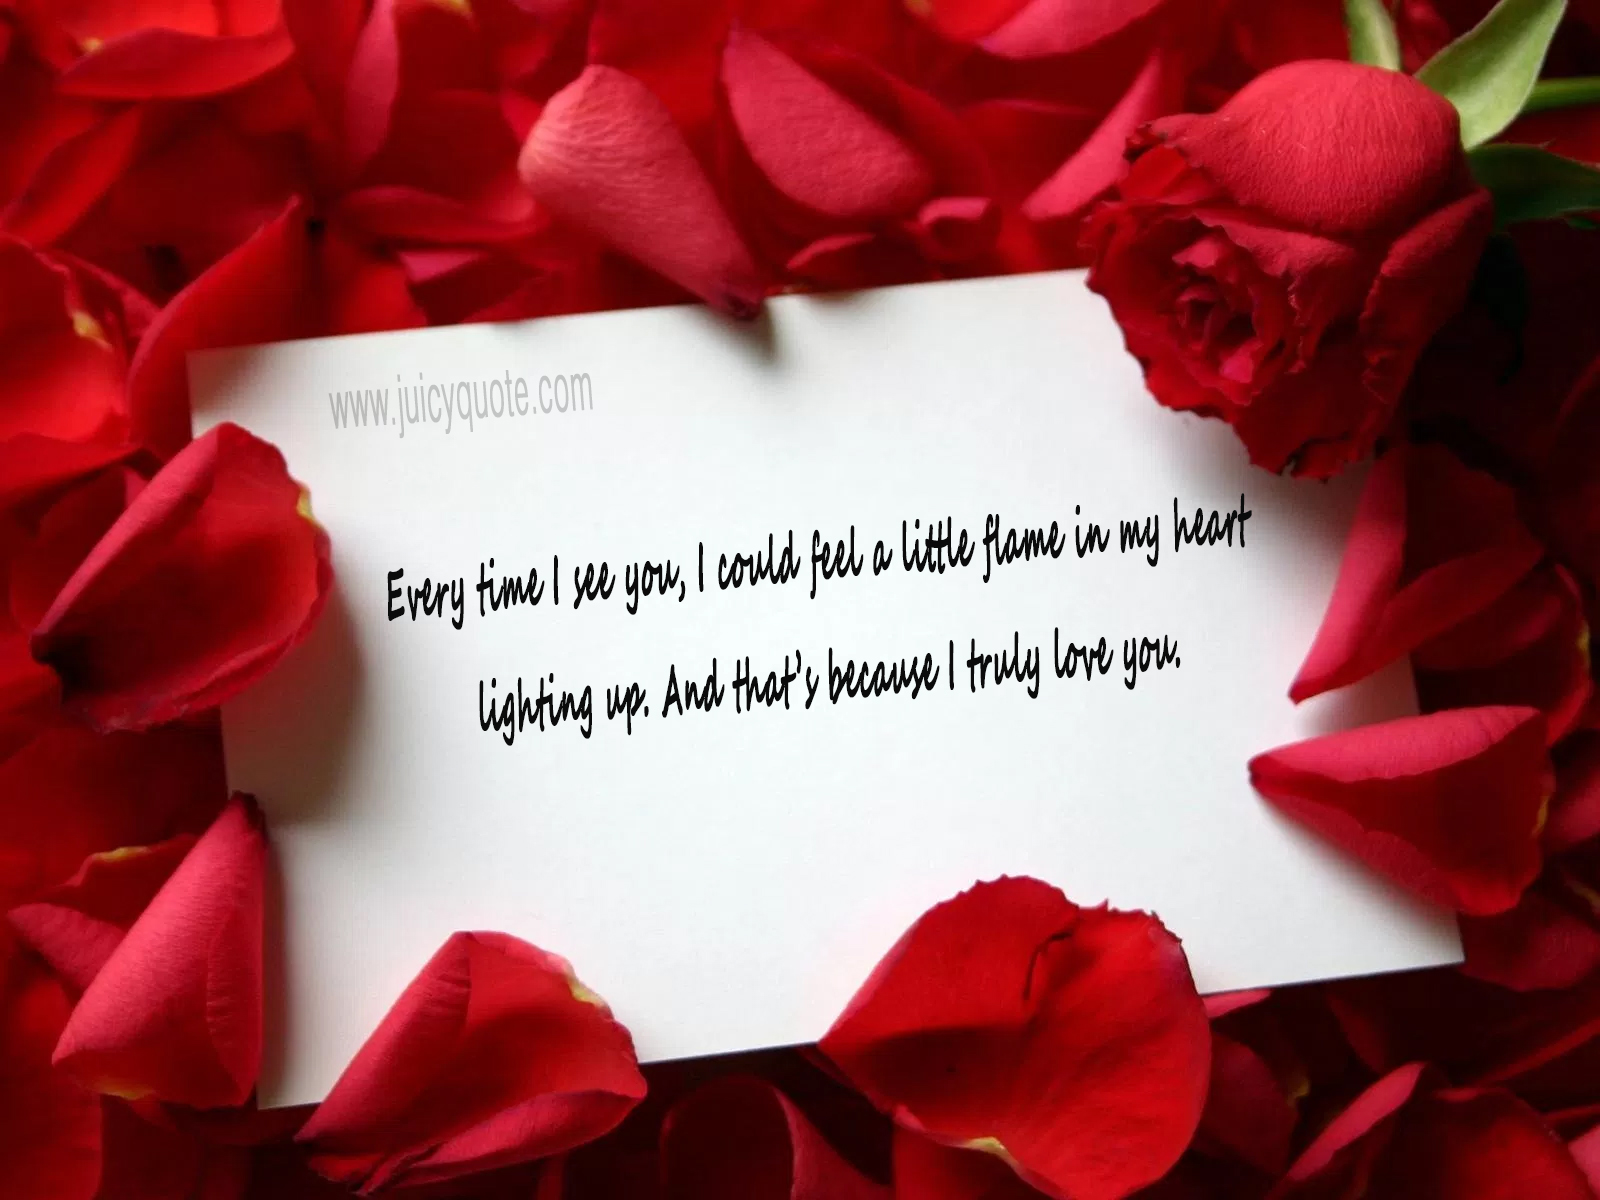 Valentines Day Quotes For Girlfriend Best Valentine's Day Wishes For Girlfriend  Juicy Quote